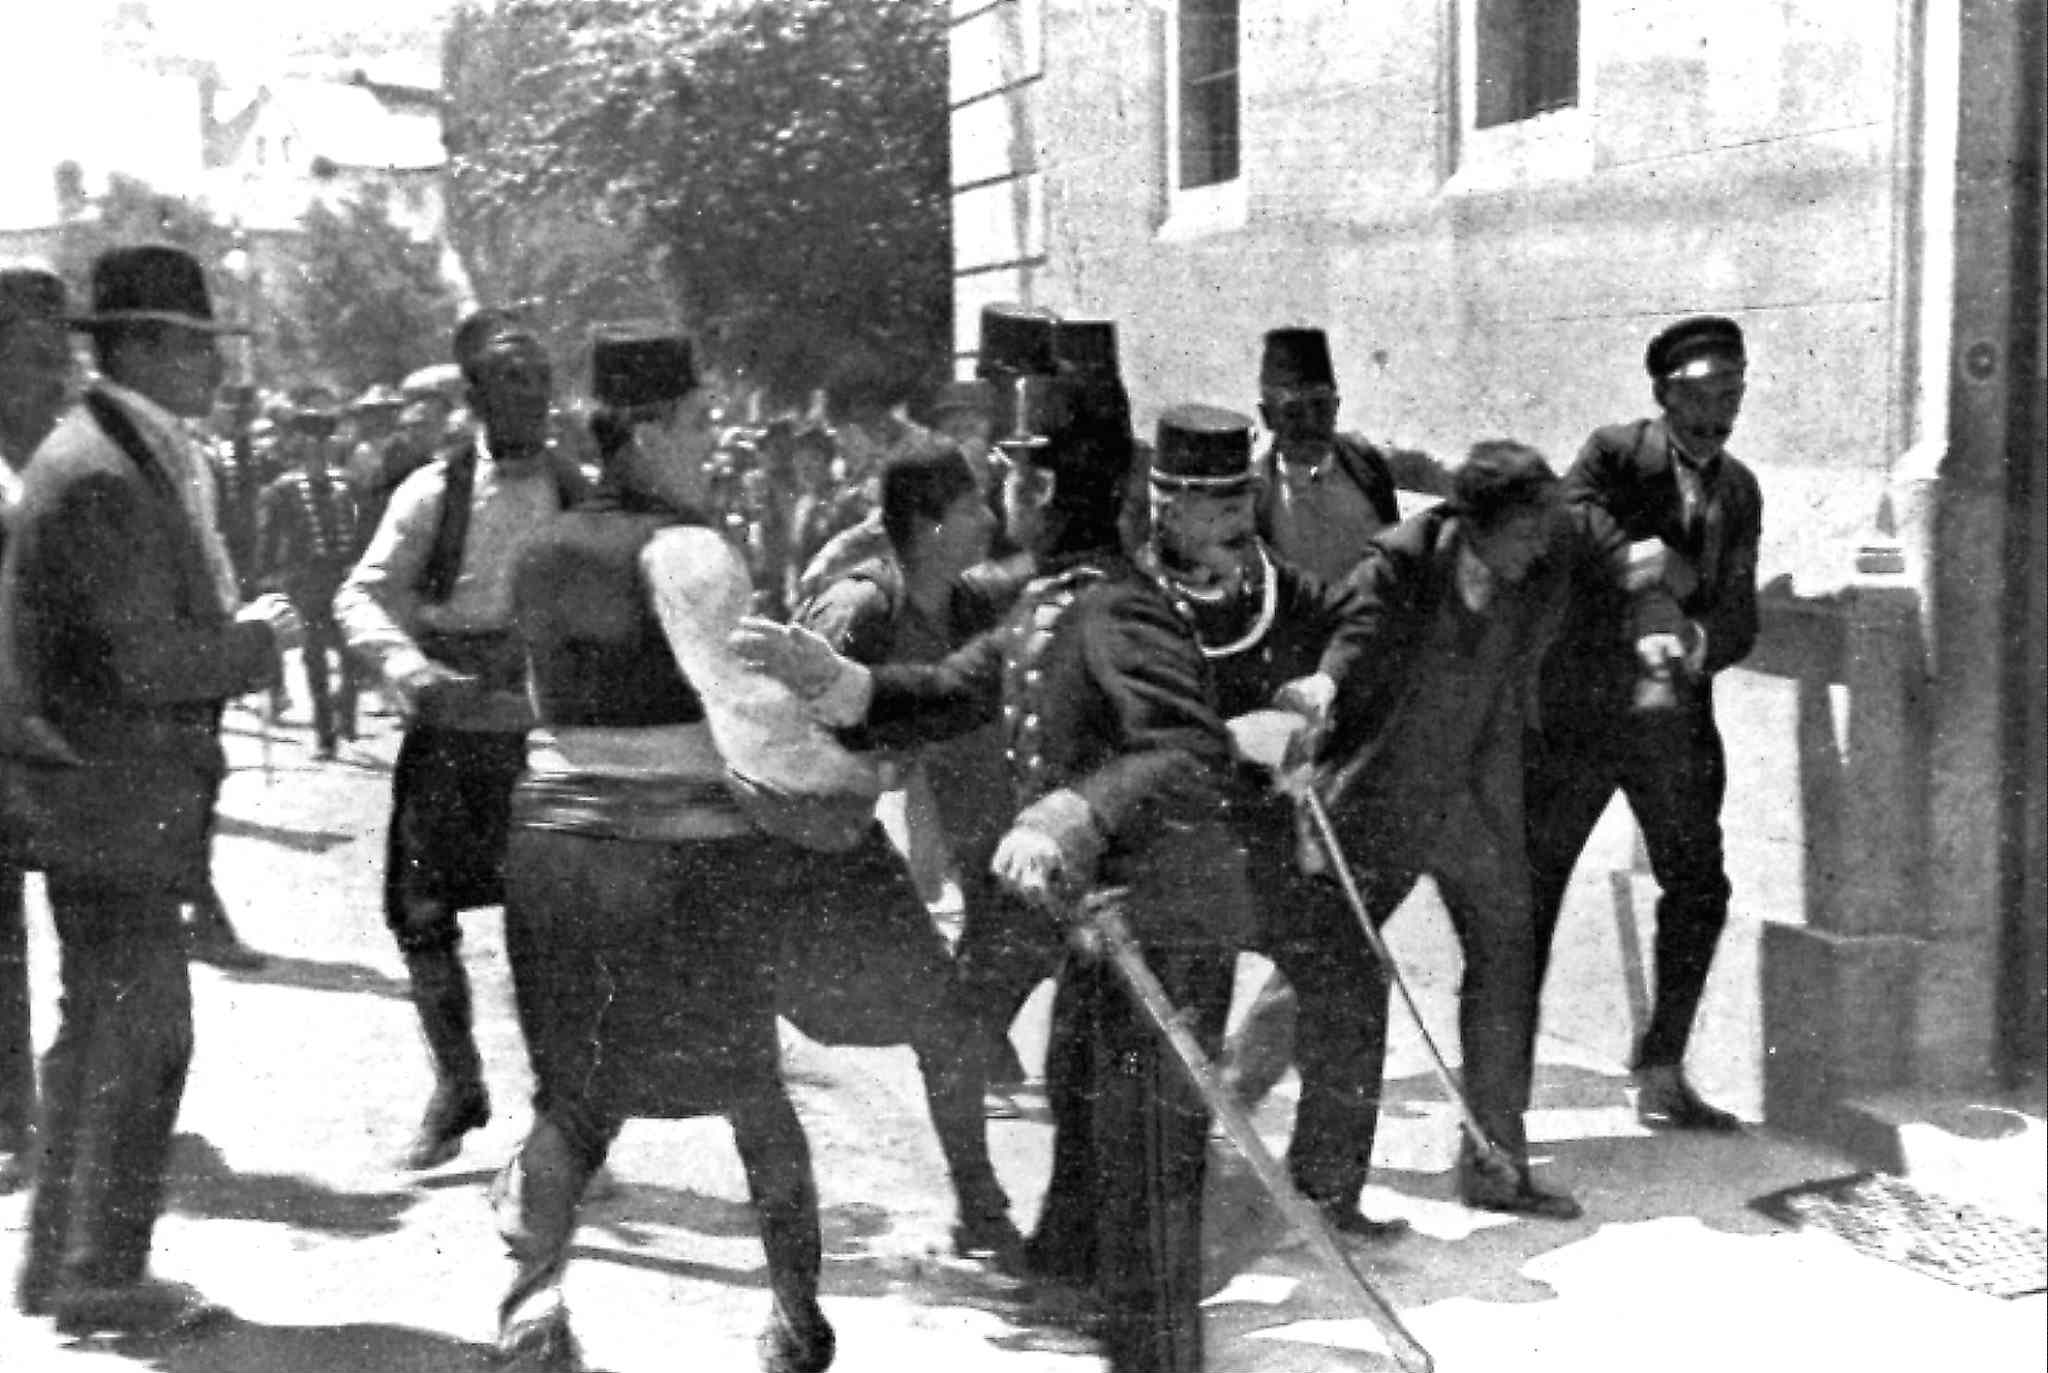 In this June 28, 1914, file photo, a suspect, (second right) is captured by police in Sarajevo, Yugoslavia, after Archduke Franz Ferdinand and his wife, Sophie, were killed.